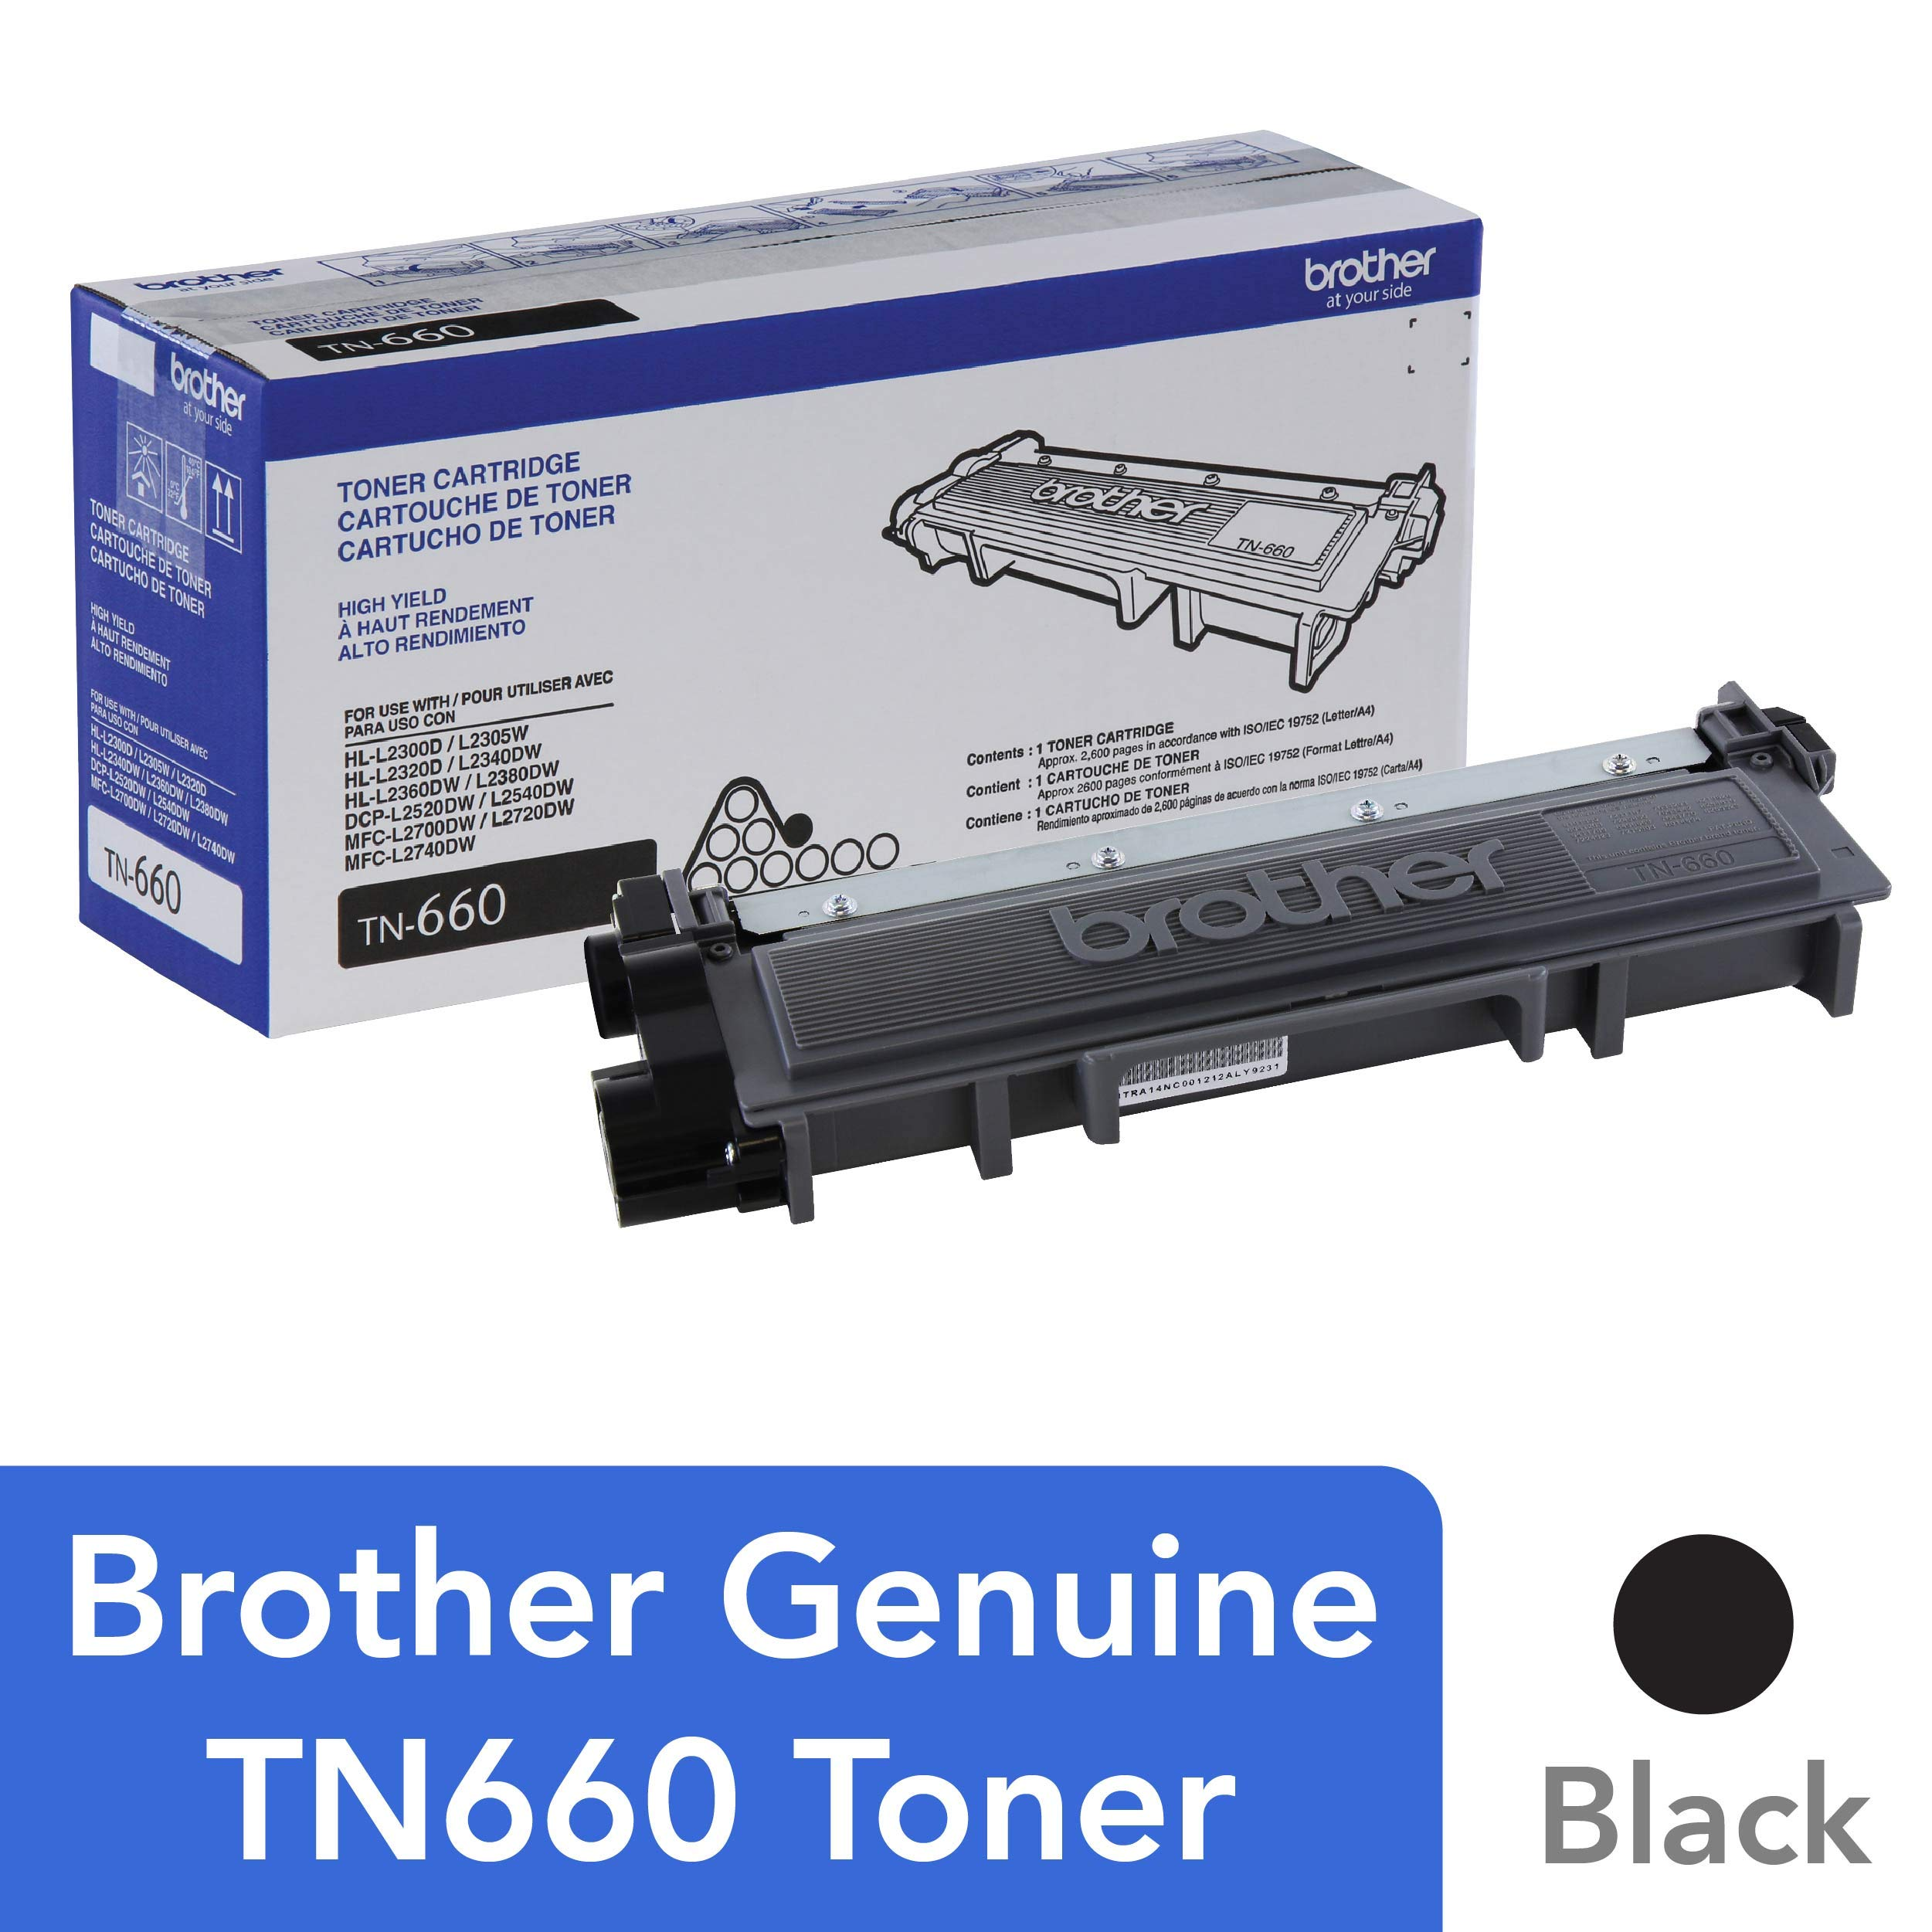 Brother TN660 High Yield Black Toner product image